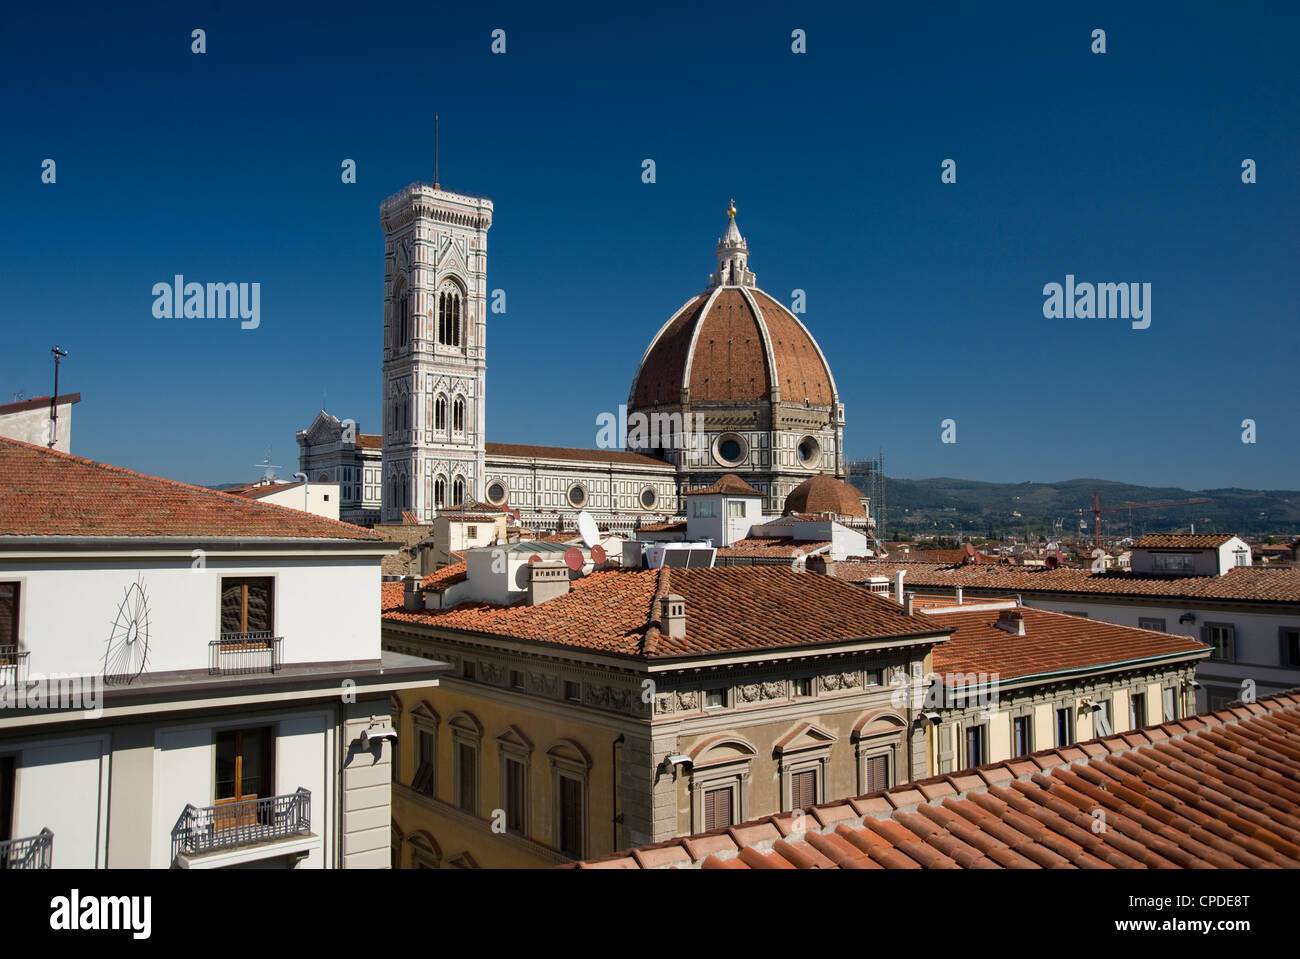 A view over teracotta rooftops to the Duomo and Campanile, Florence, UNESCO World Heritage Site, Tuscany, Italy, - Stock Image